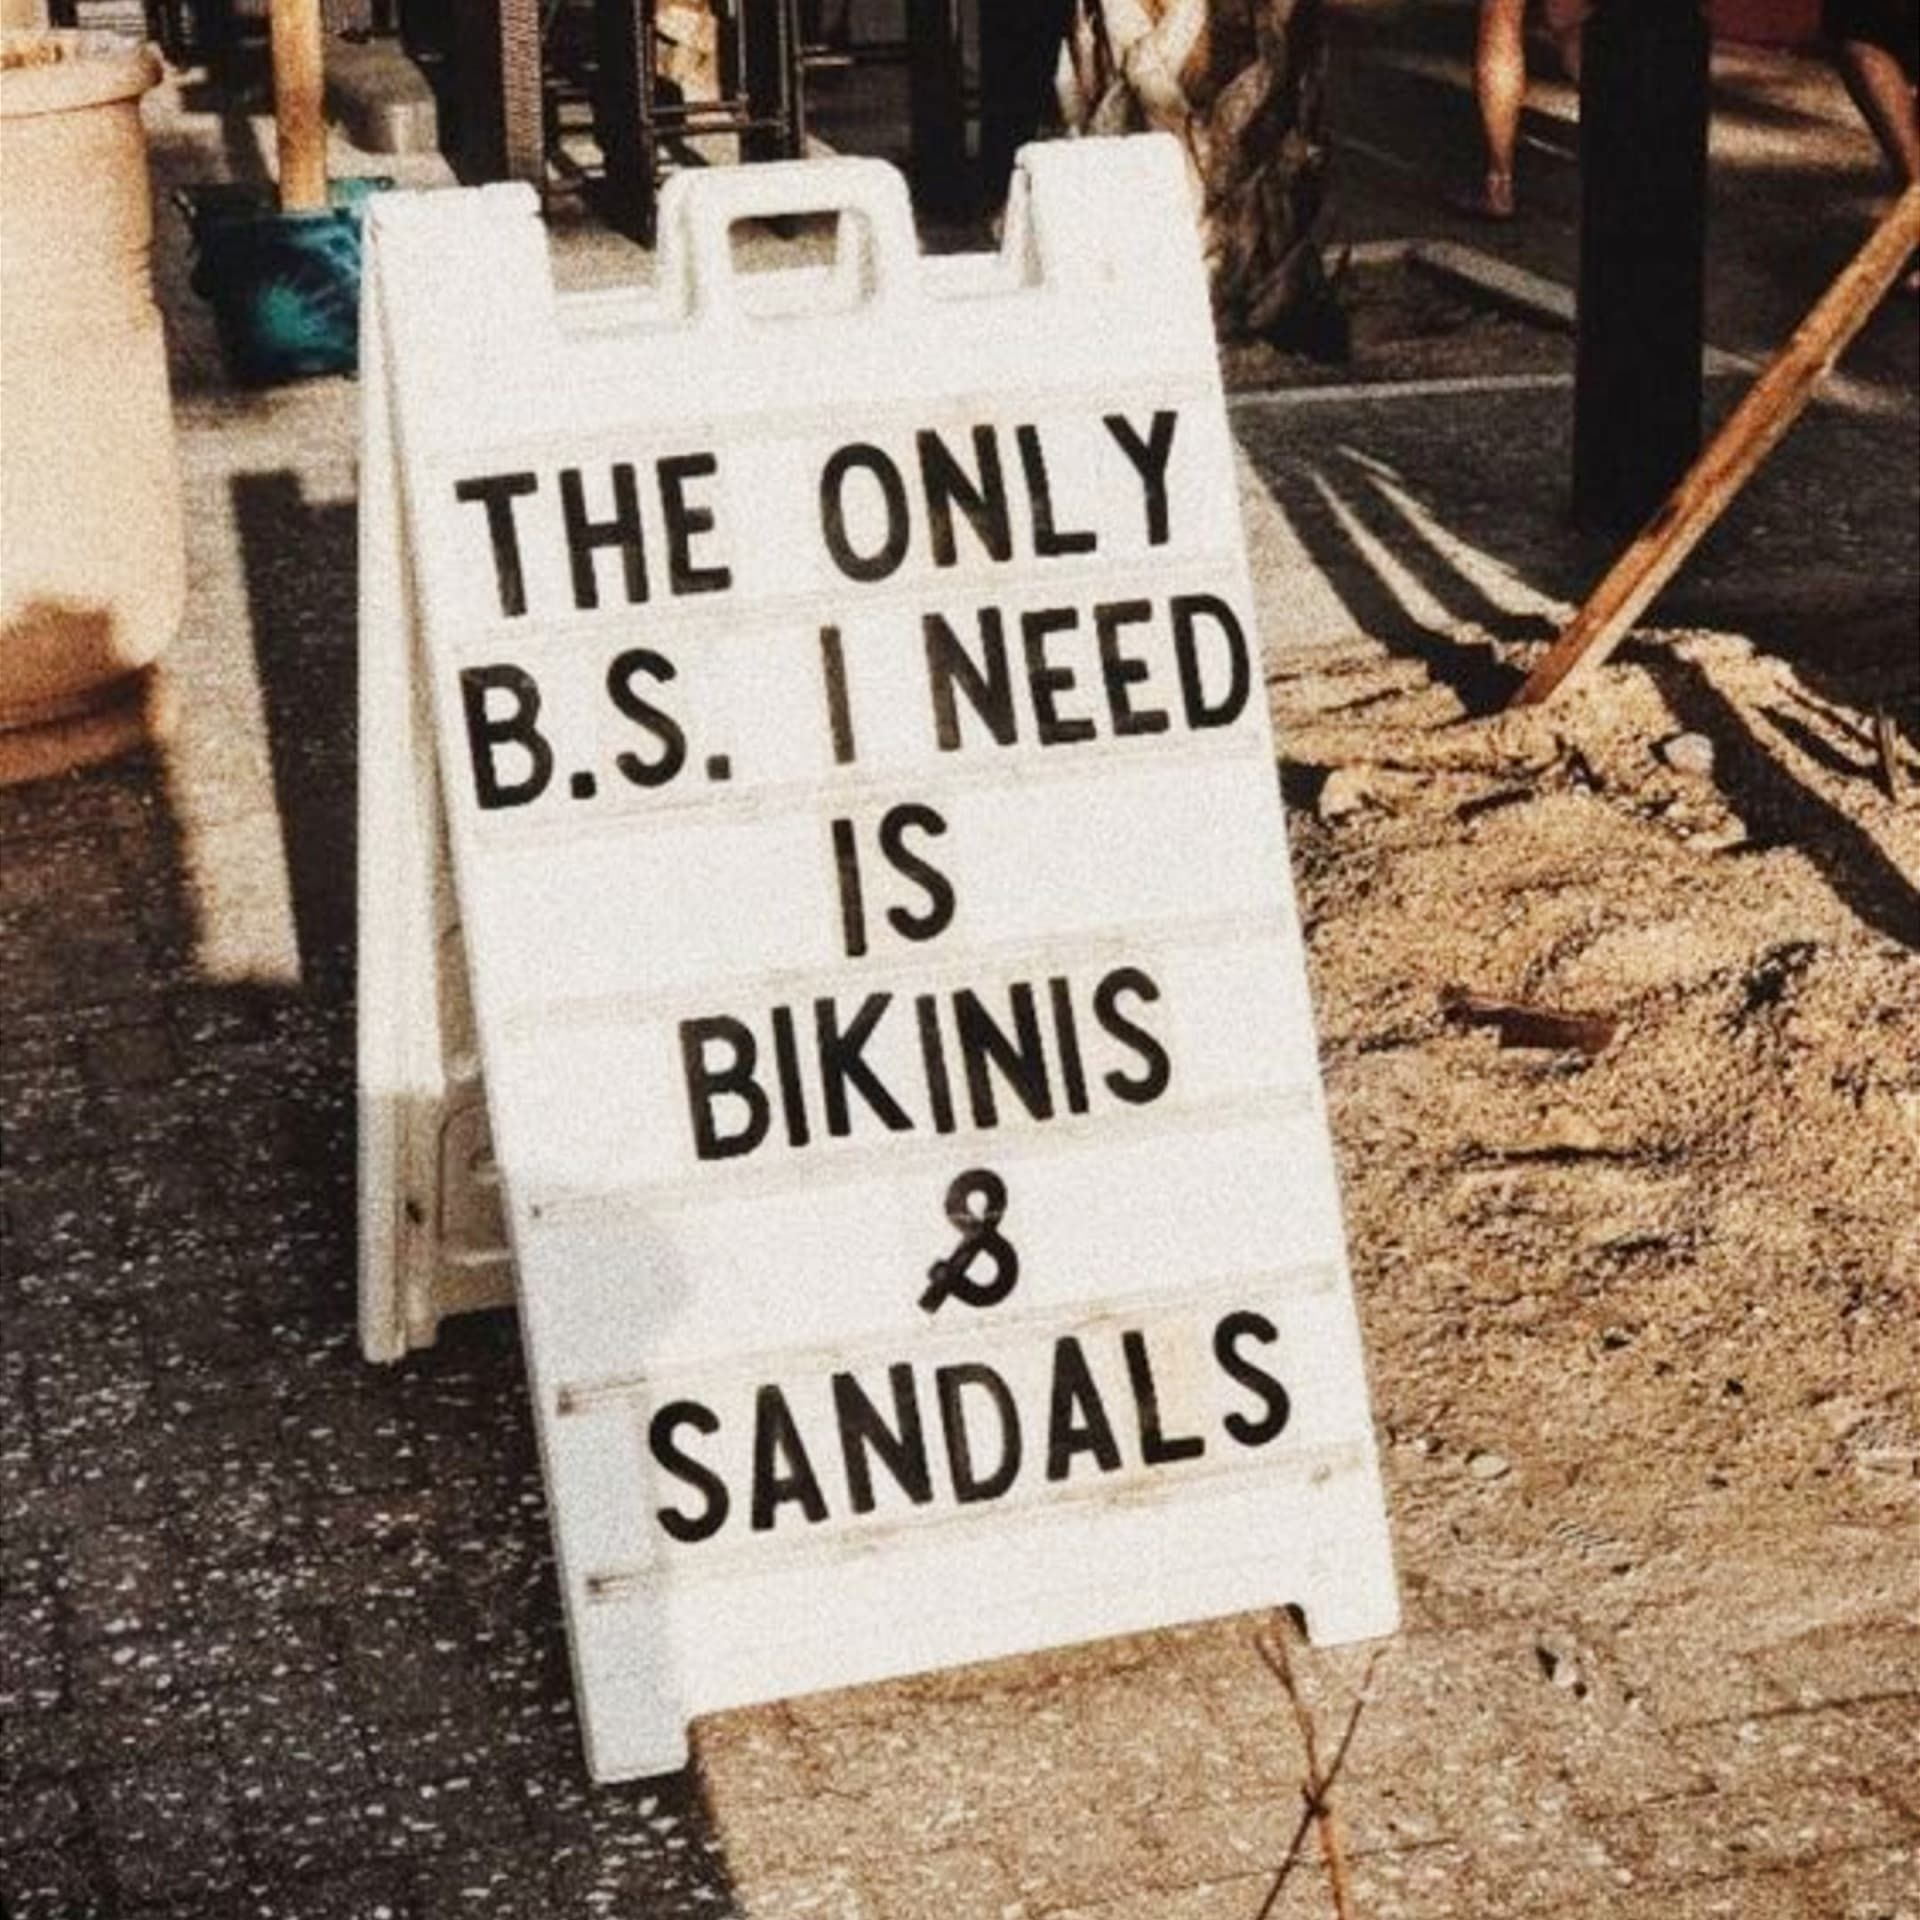 9 Summer Vibes Quotes and Memes That Give Us ALL The Summer Vibes Feels - Clever DIY Ideas